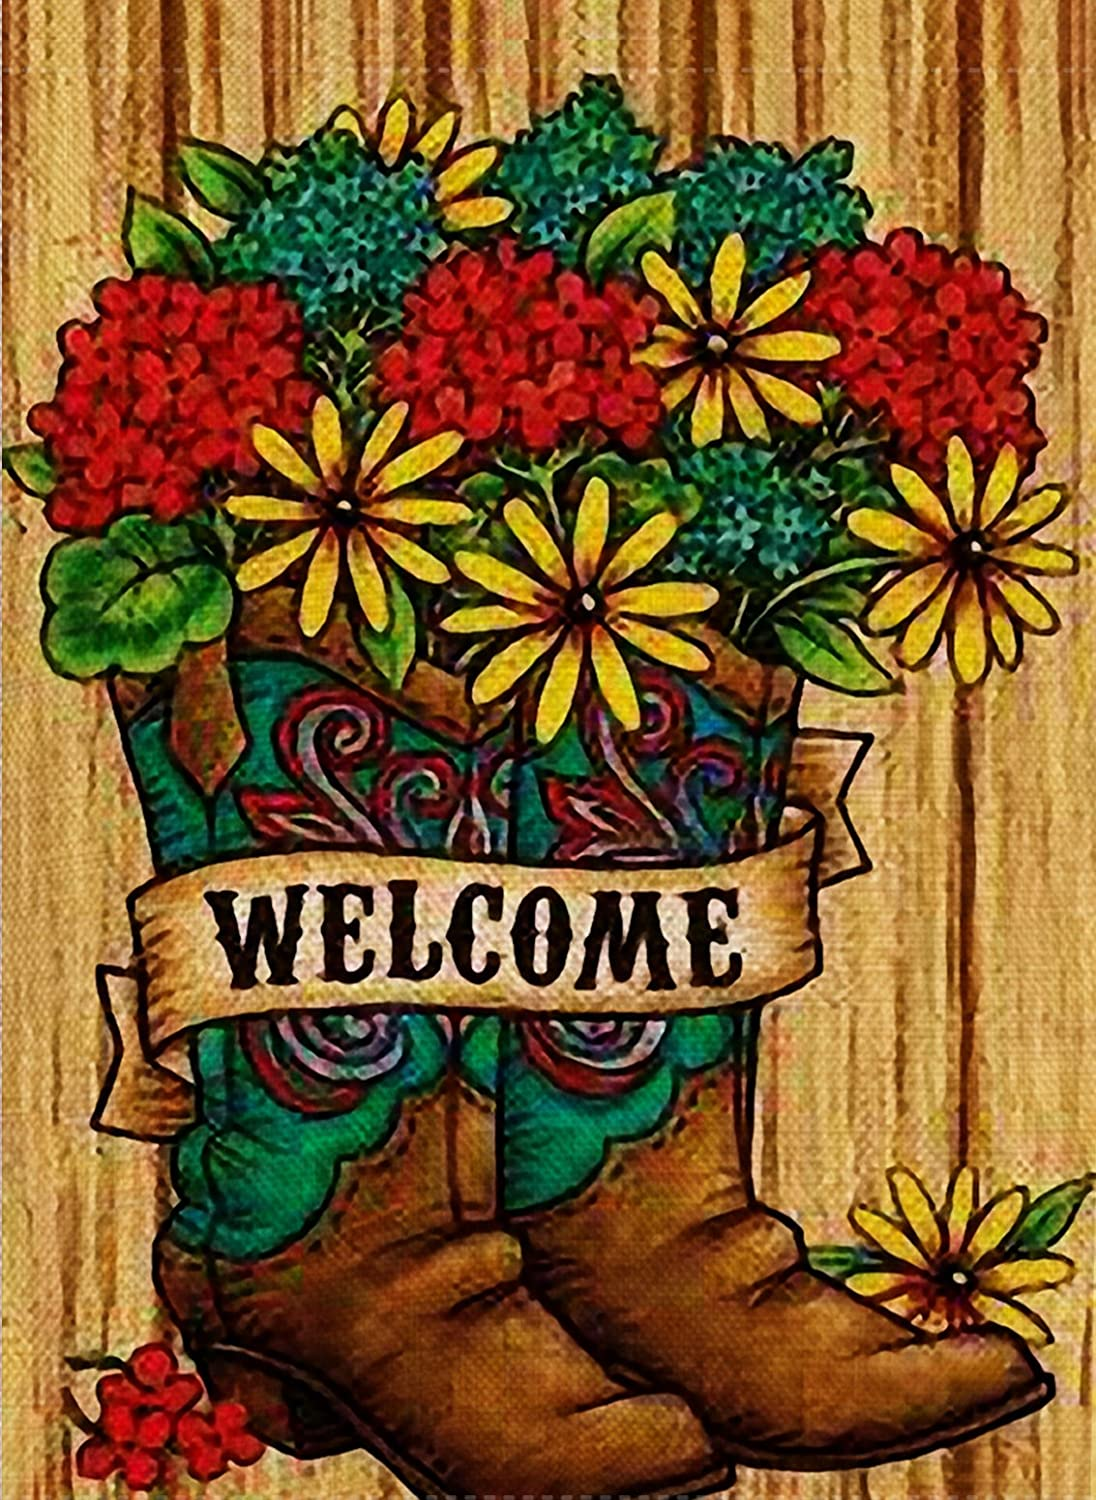 Amazon.com : Dyrenson Home Decorative Outdoor Double Sided Welcome ...